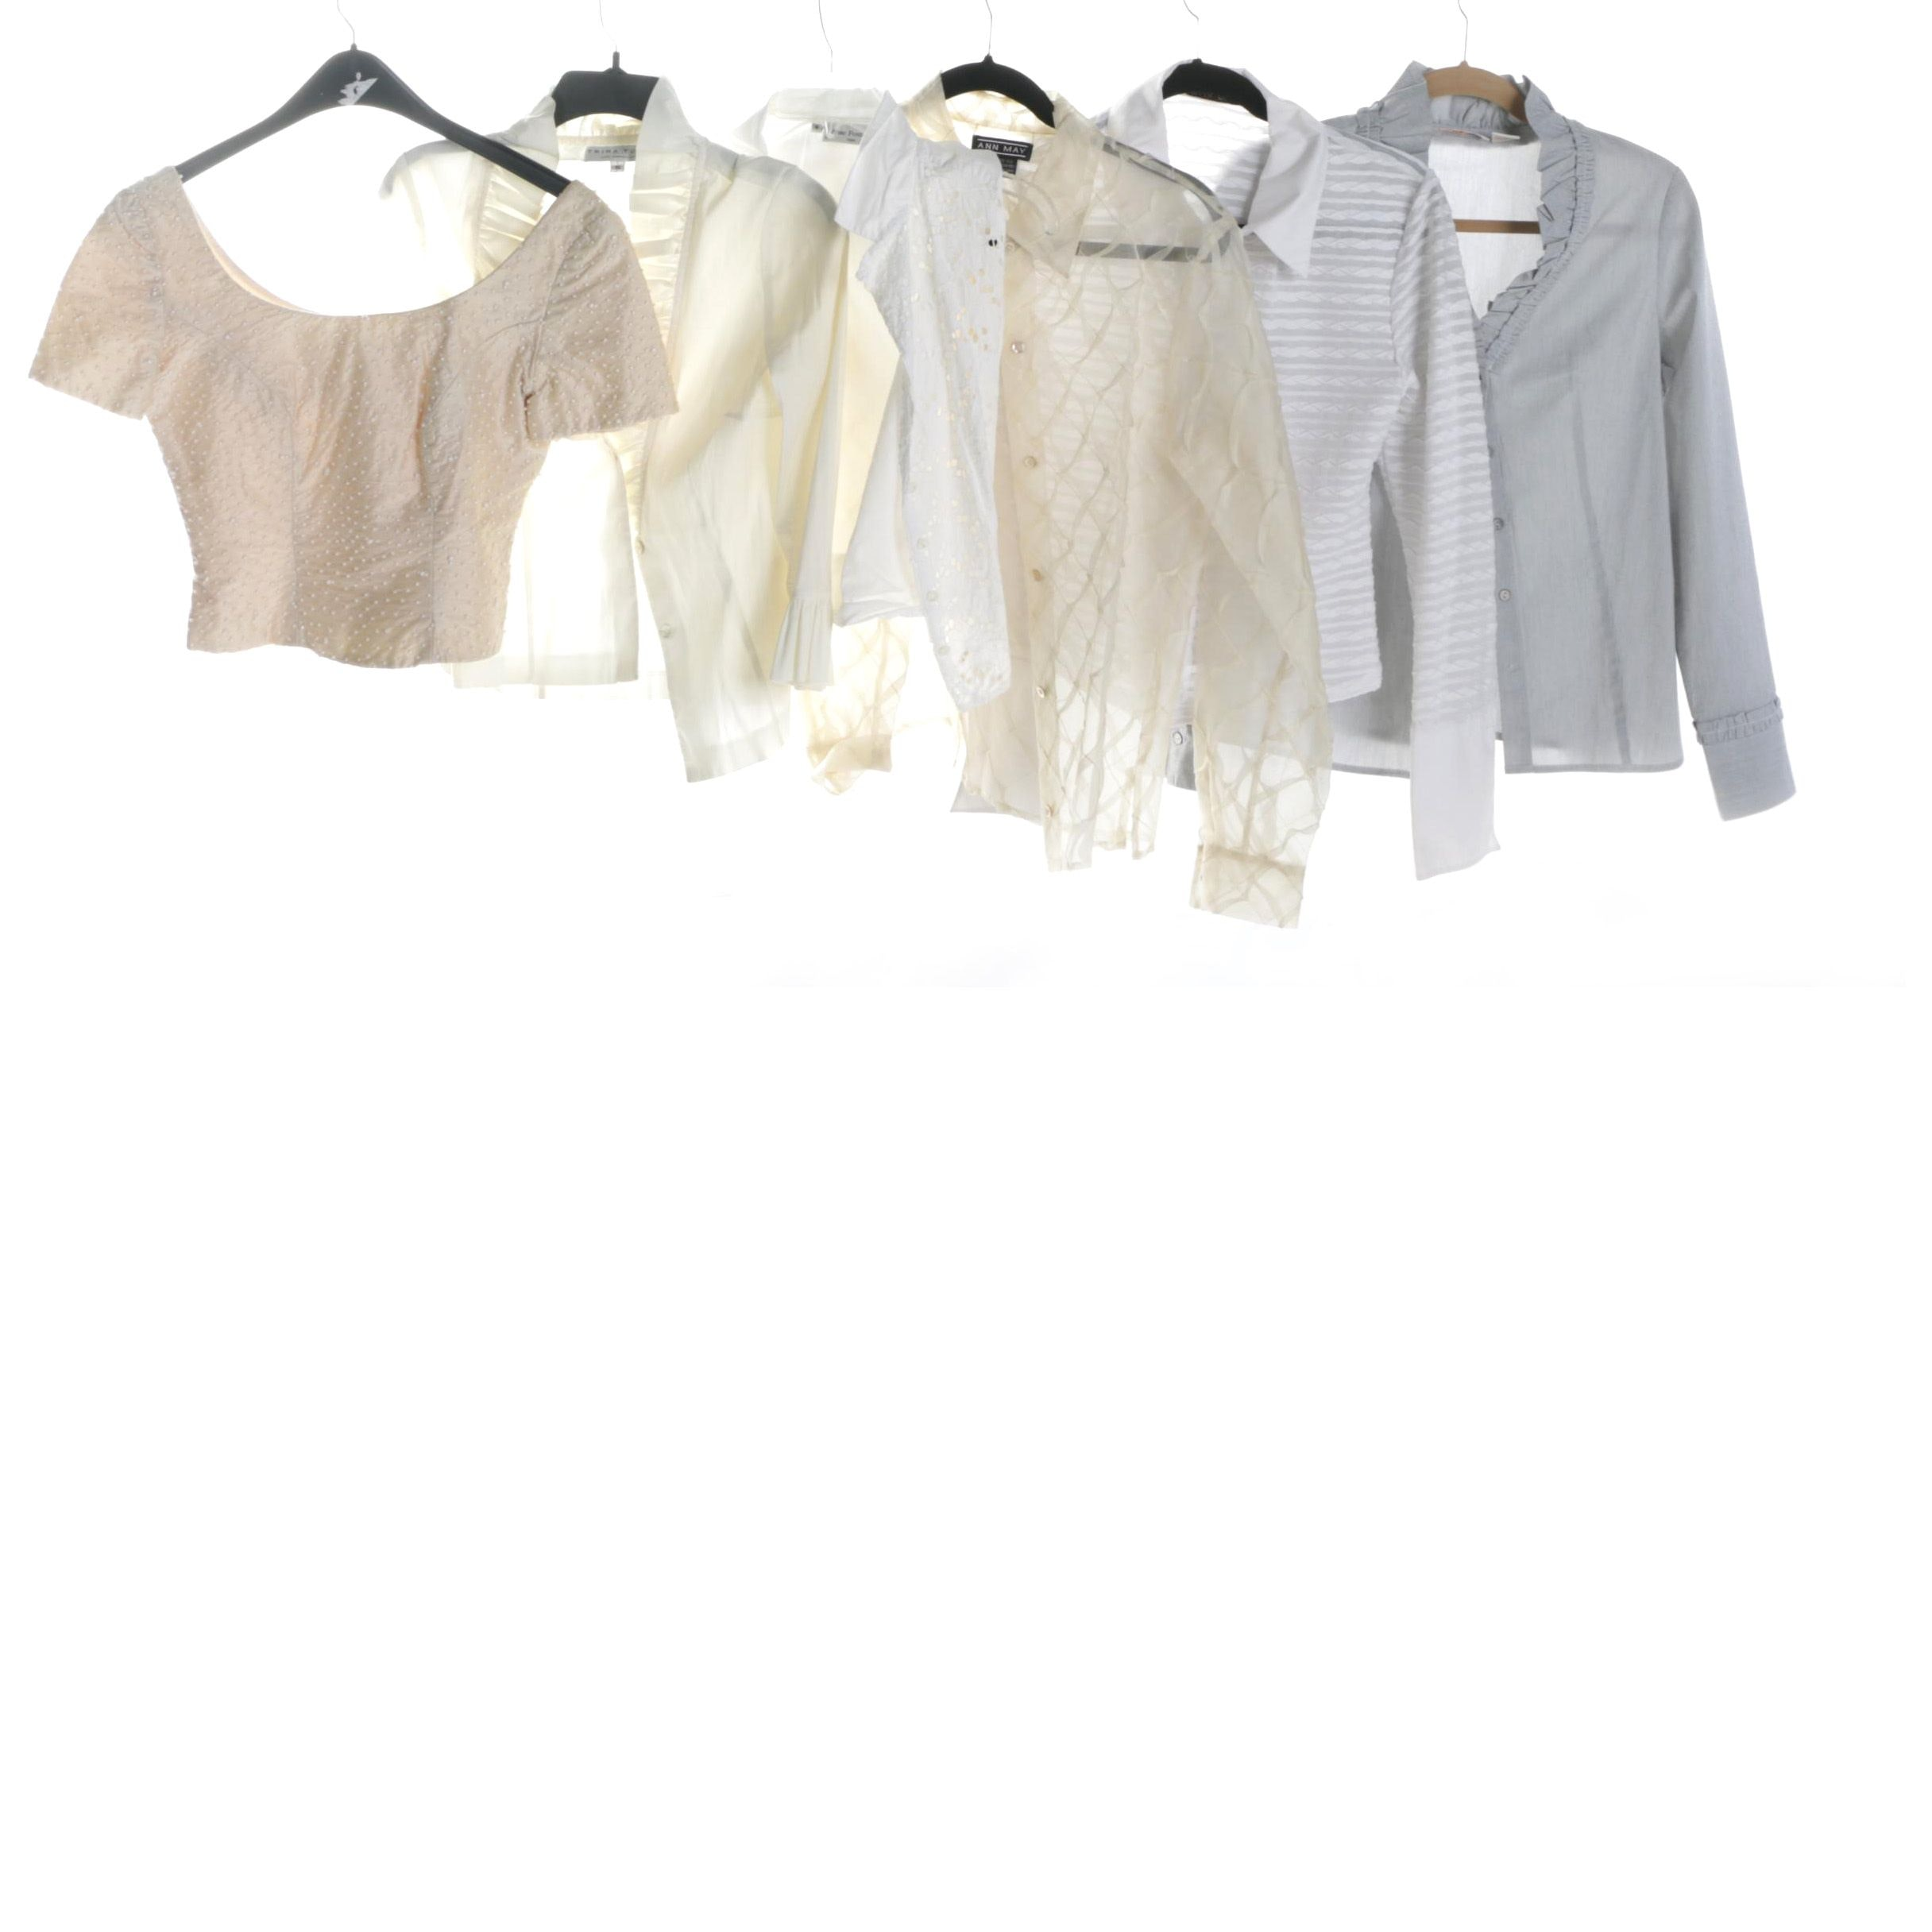 Women's Designer Blouses with Anne Fontaine Paris